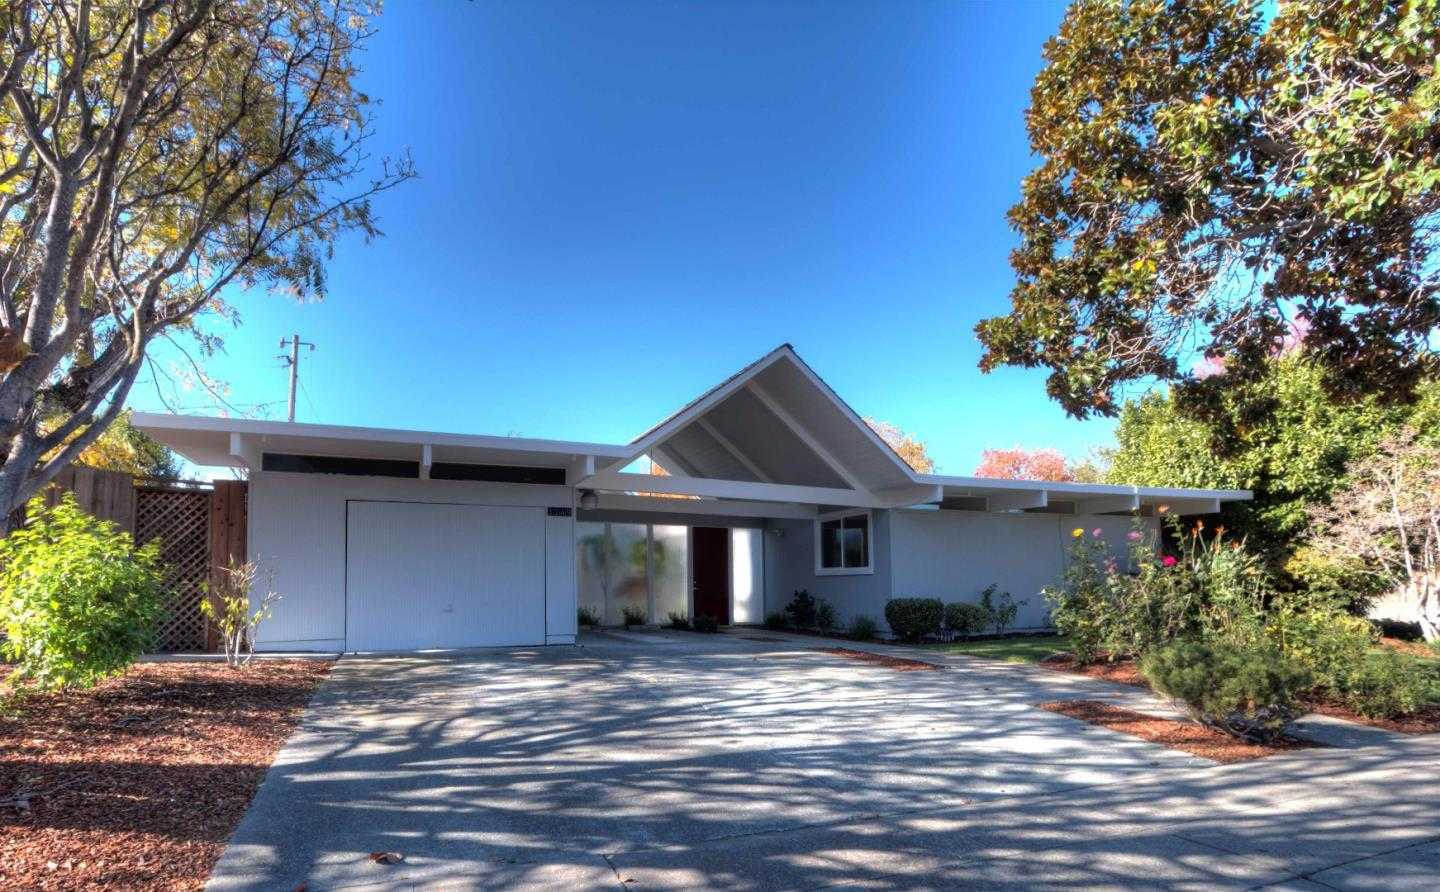 $1,949,000 - 4Br/2Ba -  for Sale in Sunnyvale